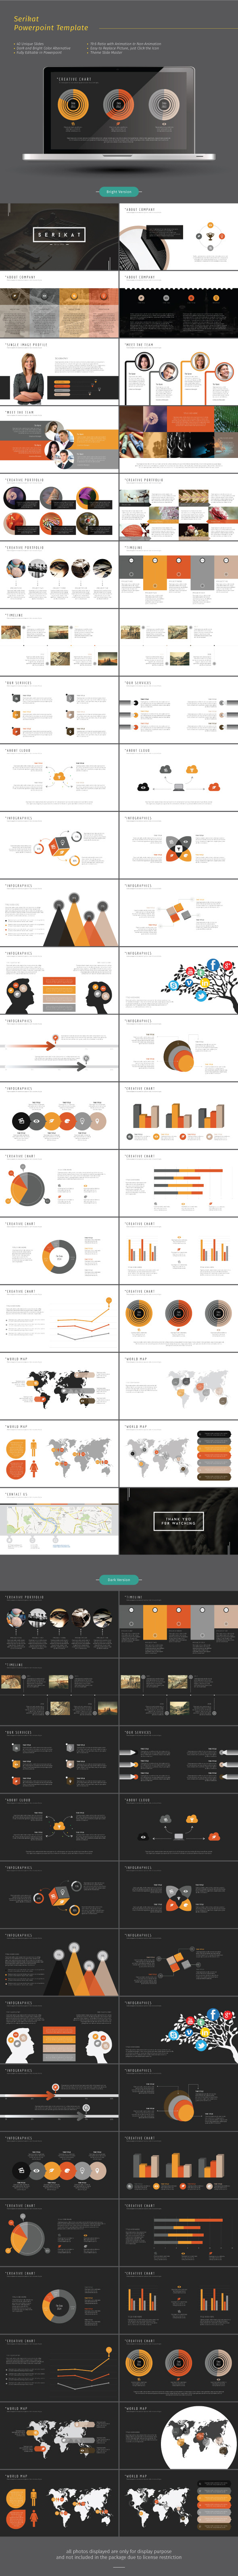 GraphicRiver Serikat Powerpoint Template 9807995